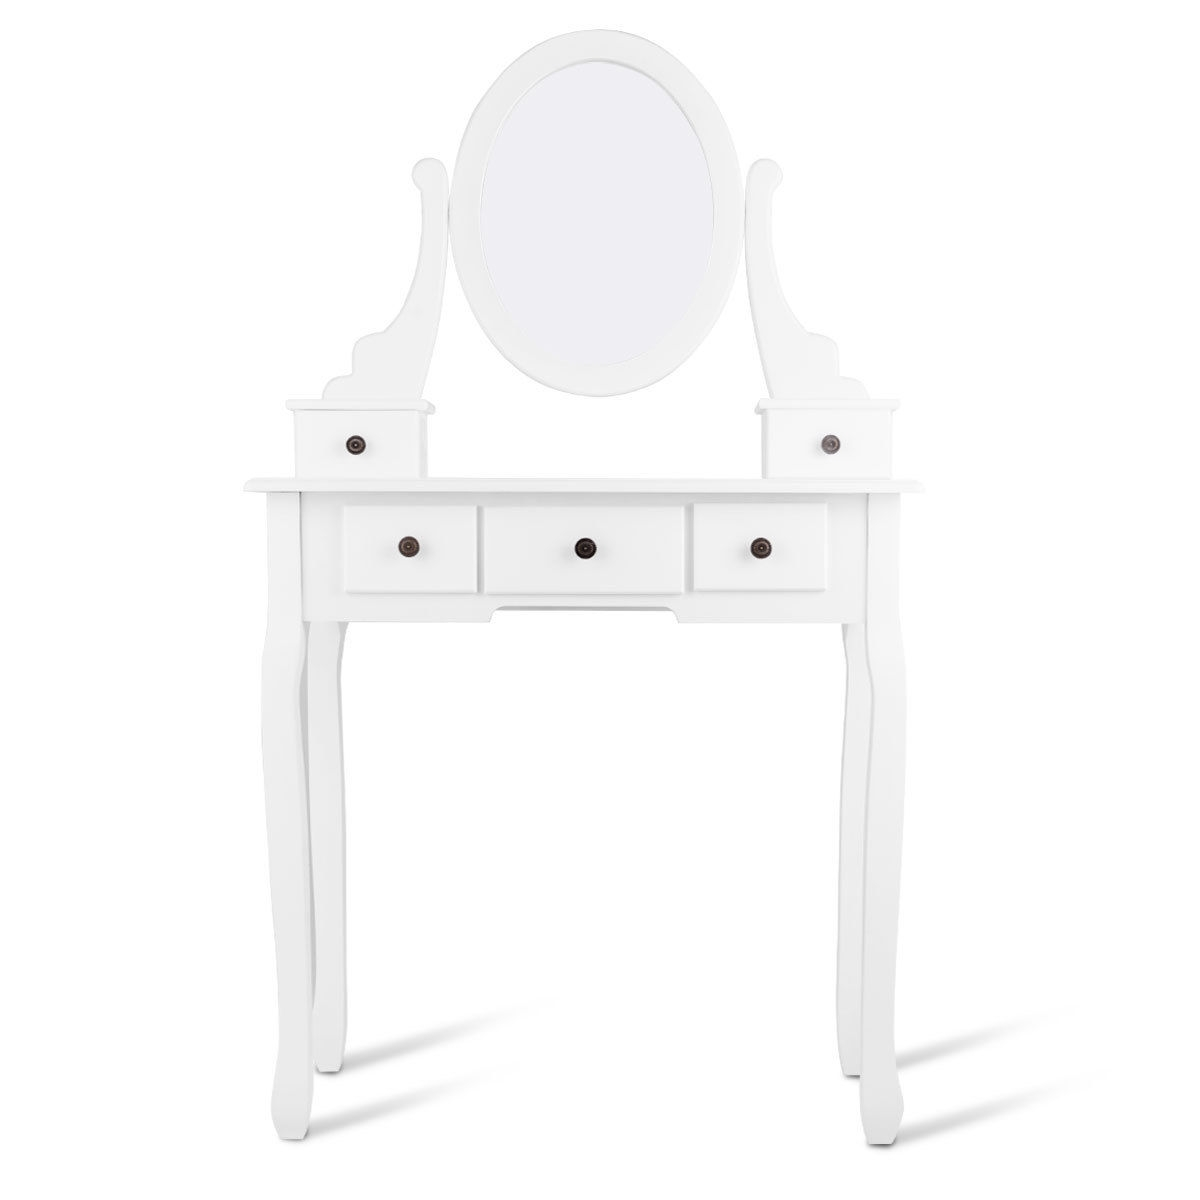 Dressing Table Set with Oval Mirror, Stool and 5 Storage Drawers